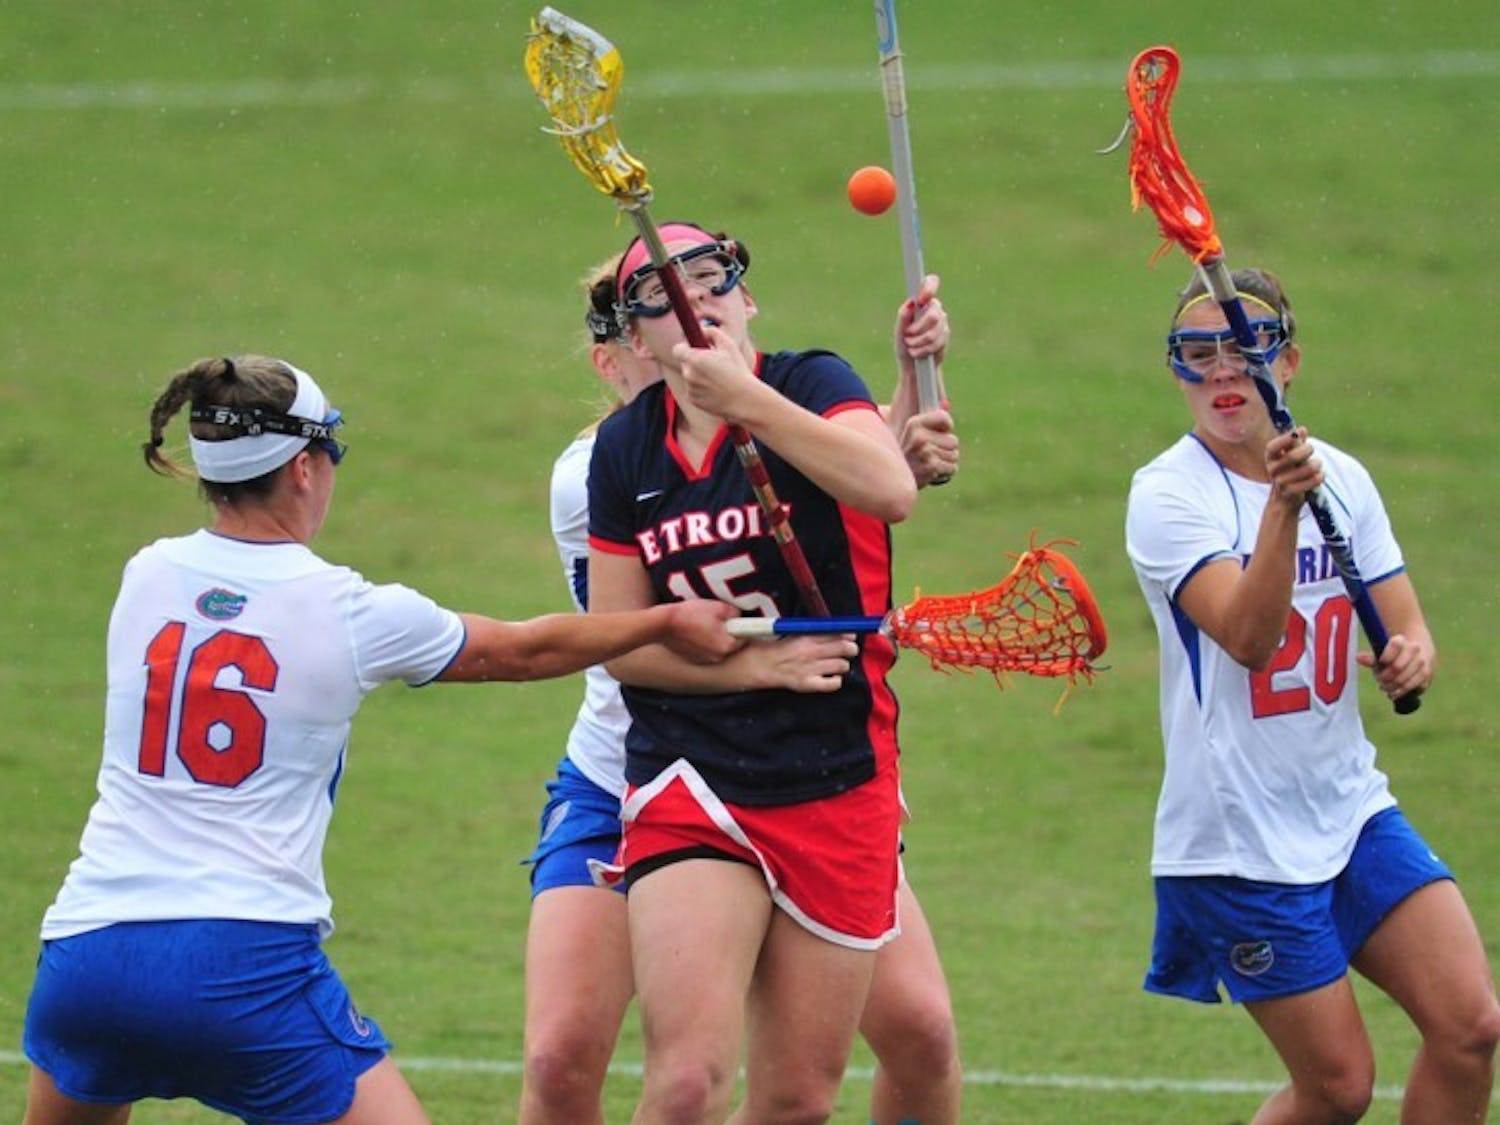 Florida midfielder Nicole Graziano (16) and defender Kayla Stolins (20) attack Detroit midfielder Emily Boissonneault during a 22-3 win on Feb. 26. The Gators are striving for cleaner play as of late.